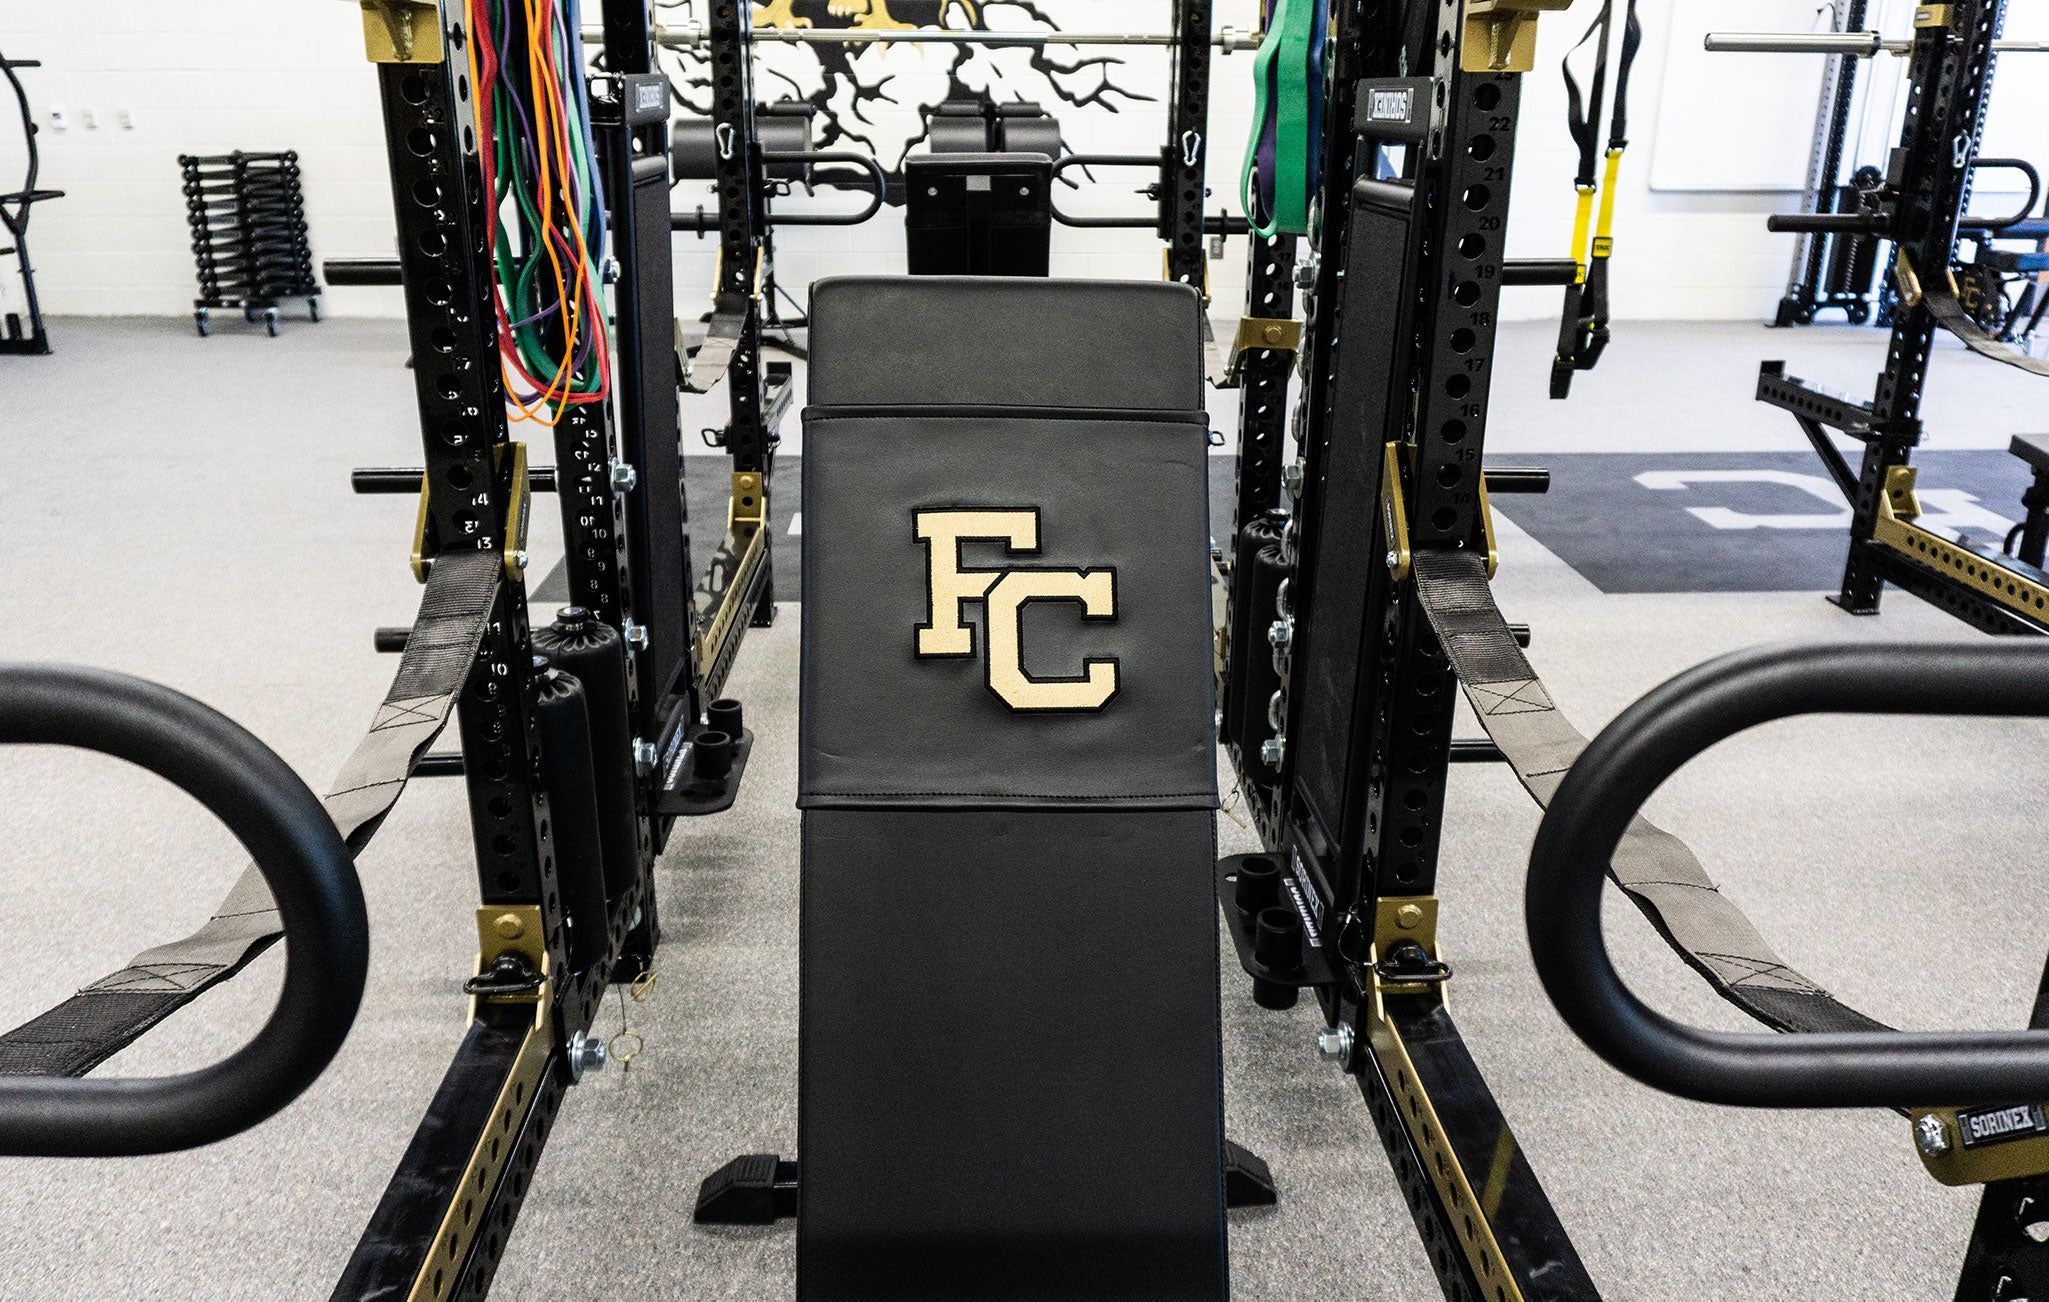 Fairfield Central High School athletics